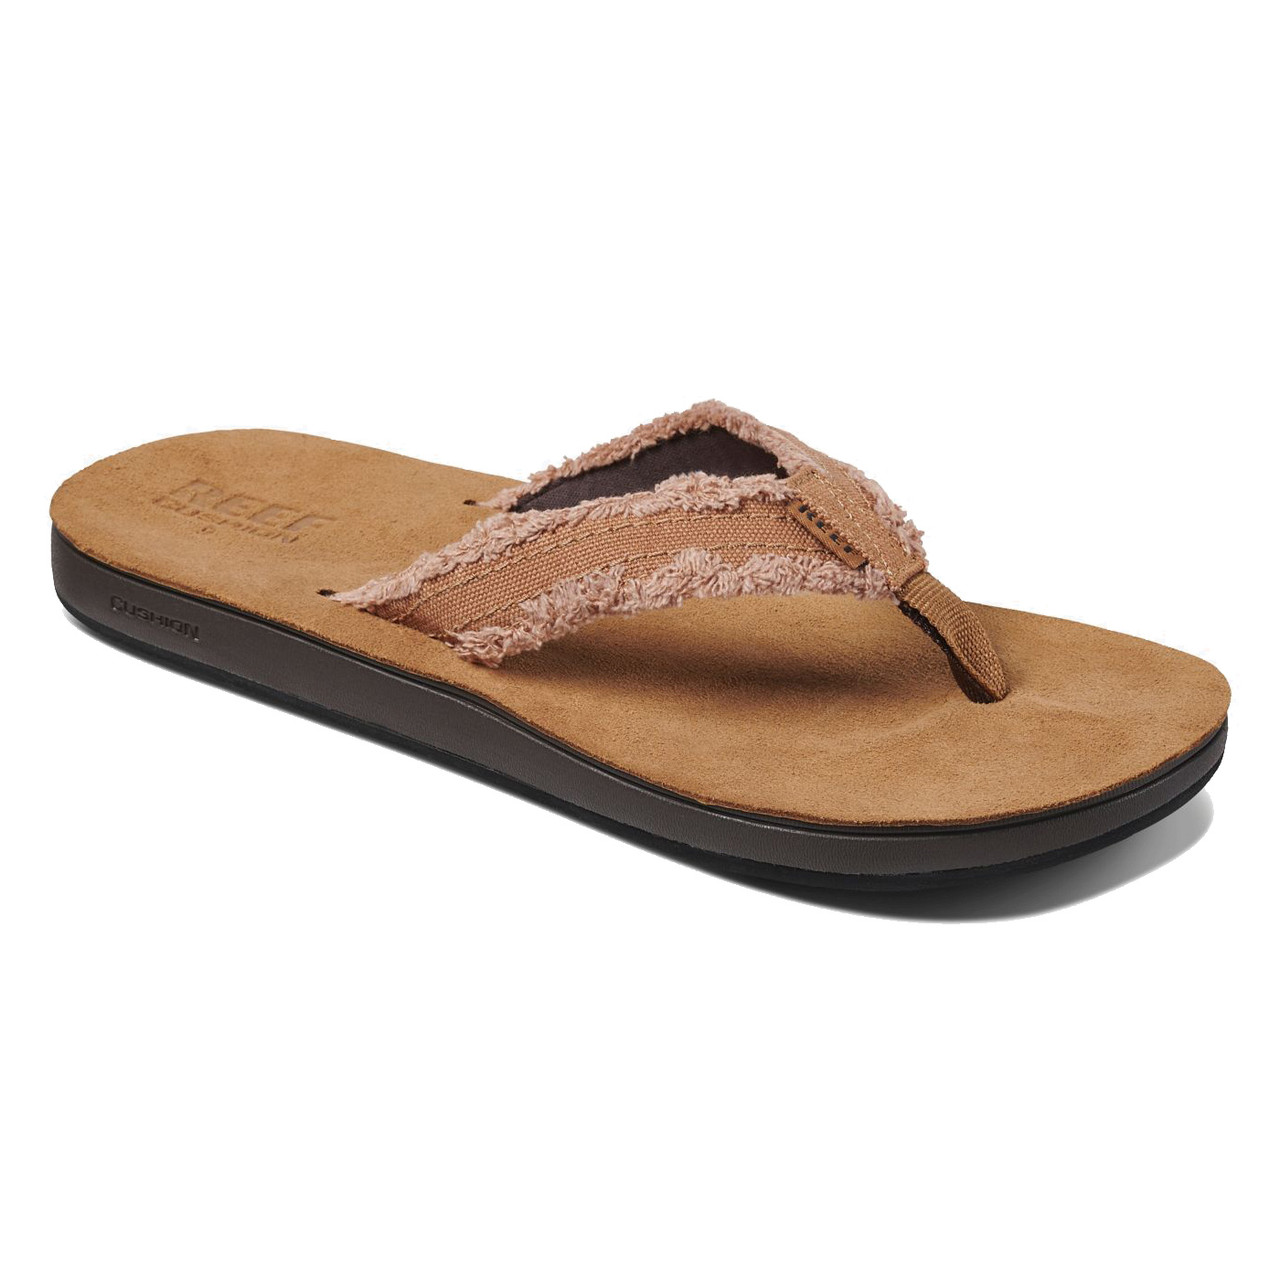 7b09fd4d2b802 Reef Flip Flop - Cushion Fray - Tan - Surf and Dirt